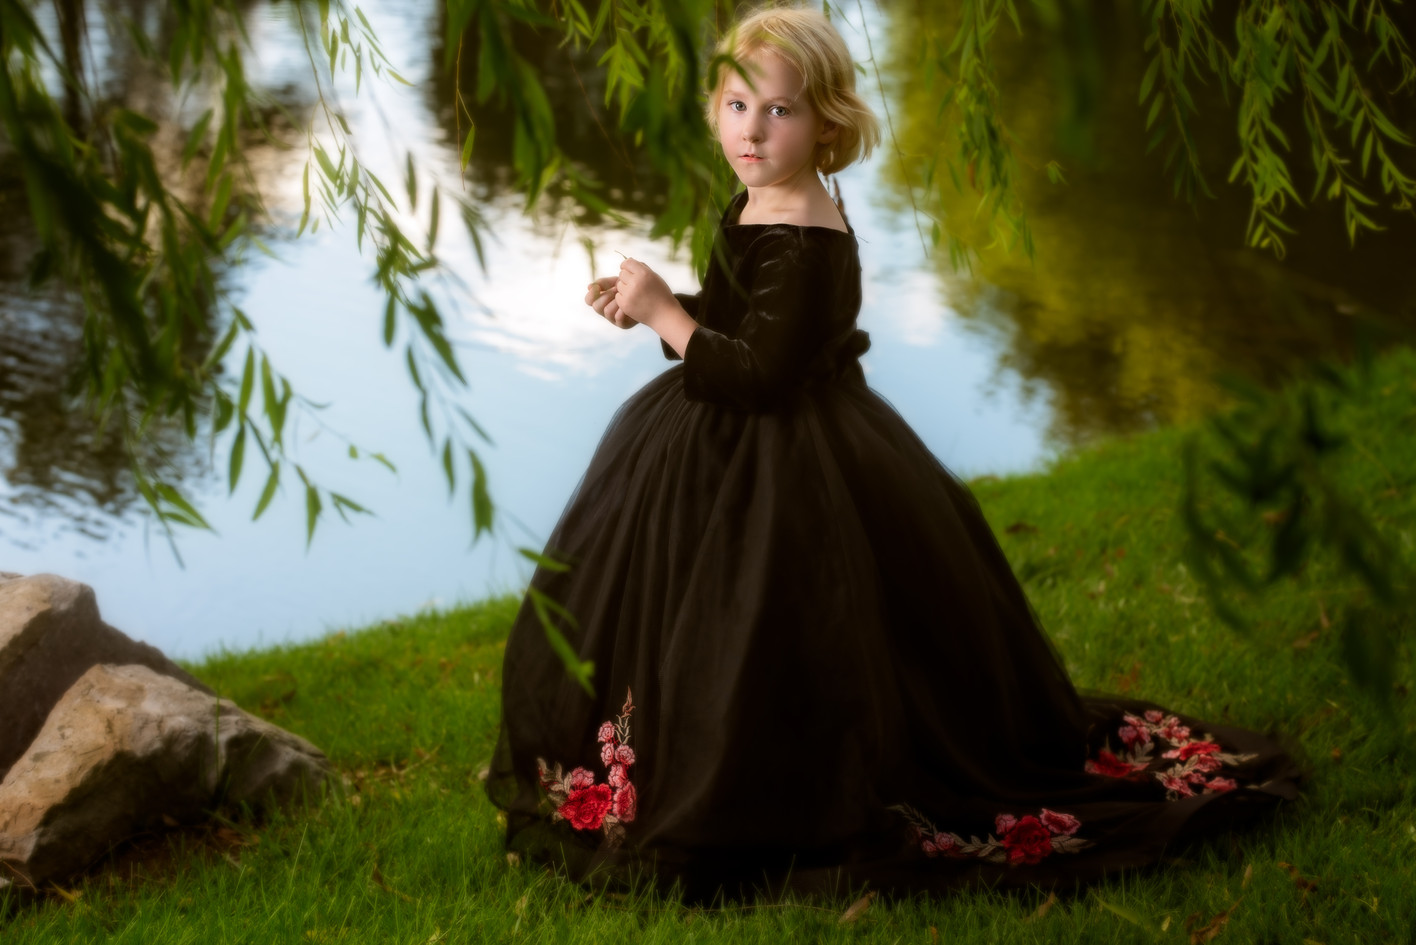 Beautiful child picture by the lake